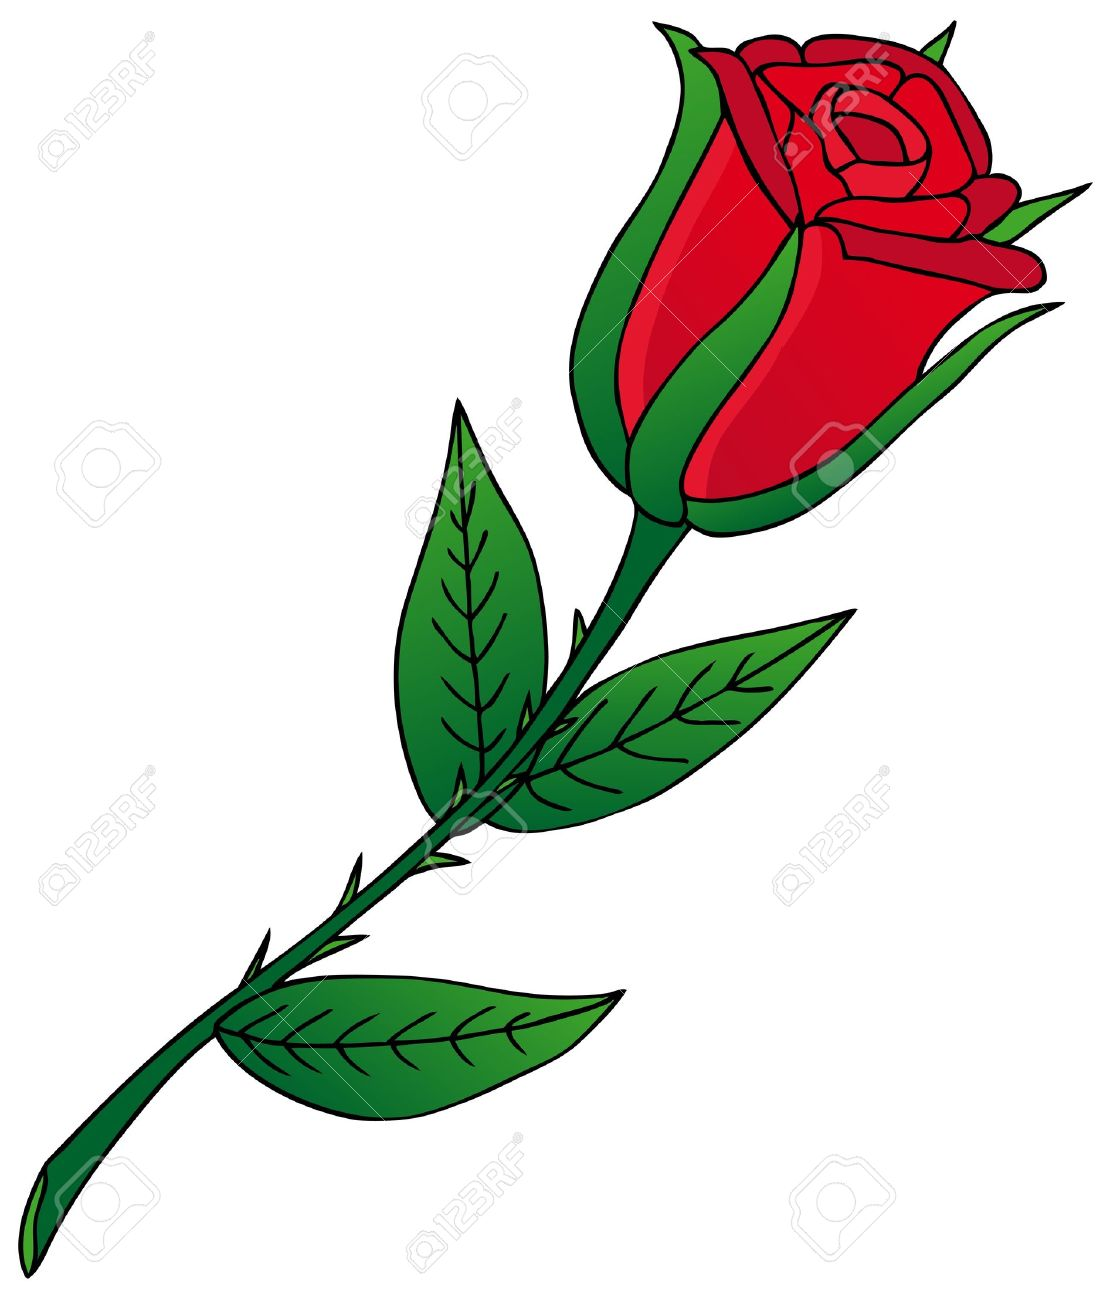 rose on white background royalty free cliparts vectors and stock rh 123rf com cartoon rose pictures Rose Clip Art